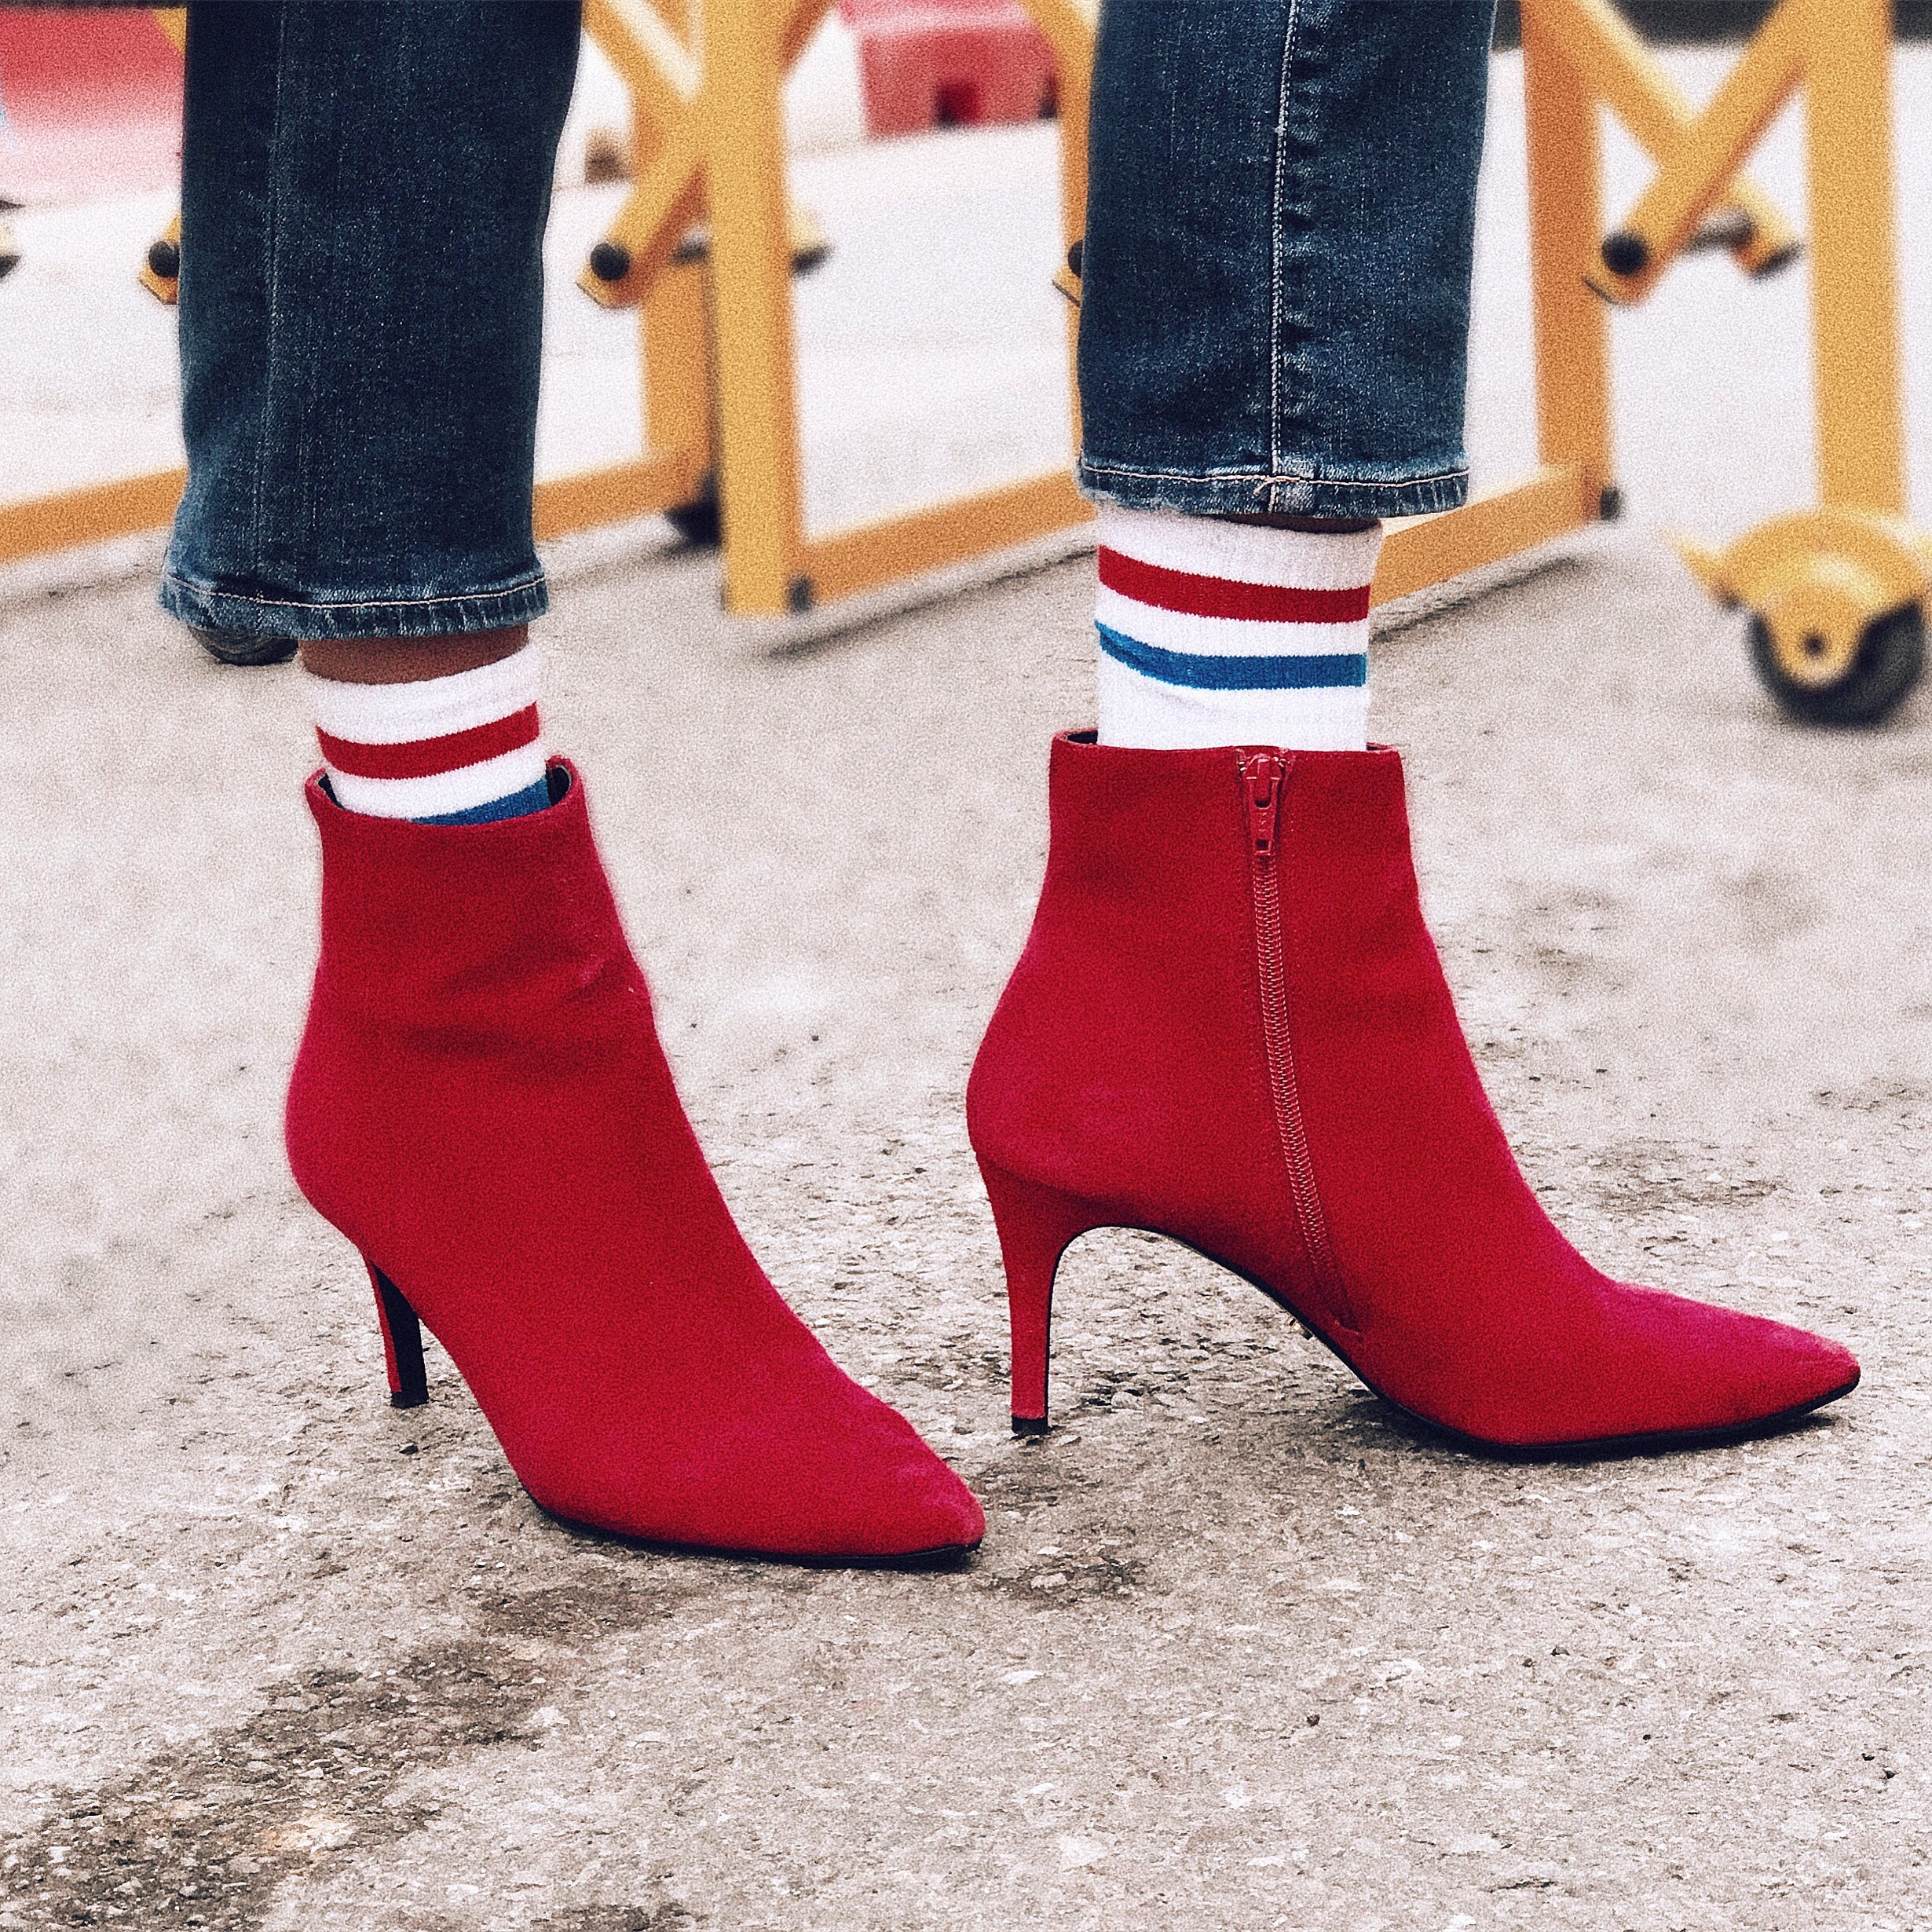 Three Ways To Wear The Red Boots This